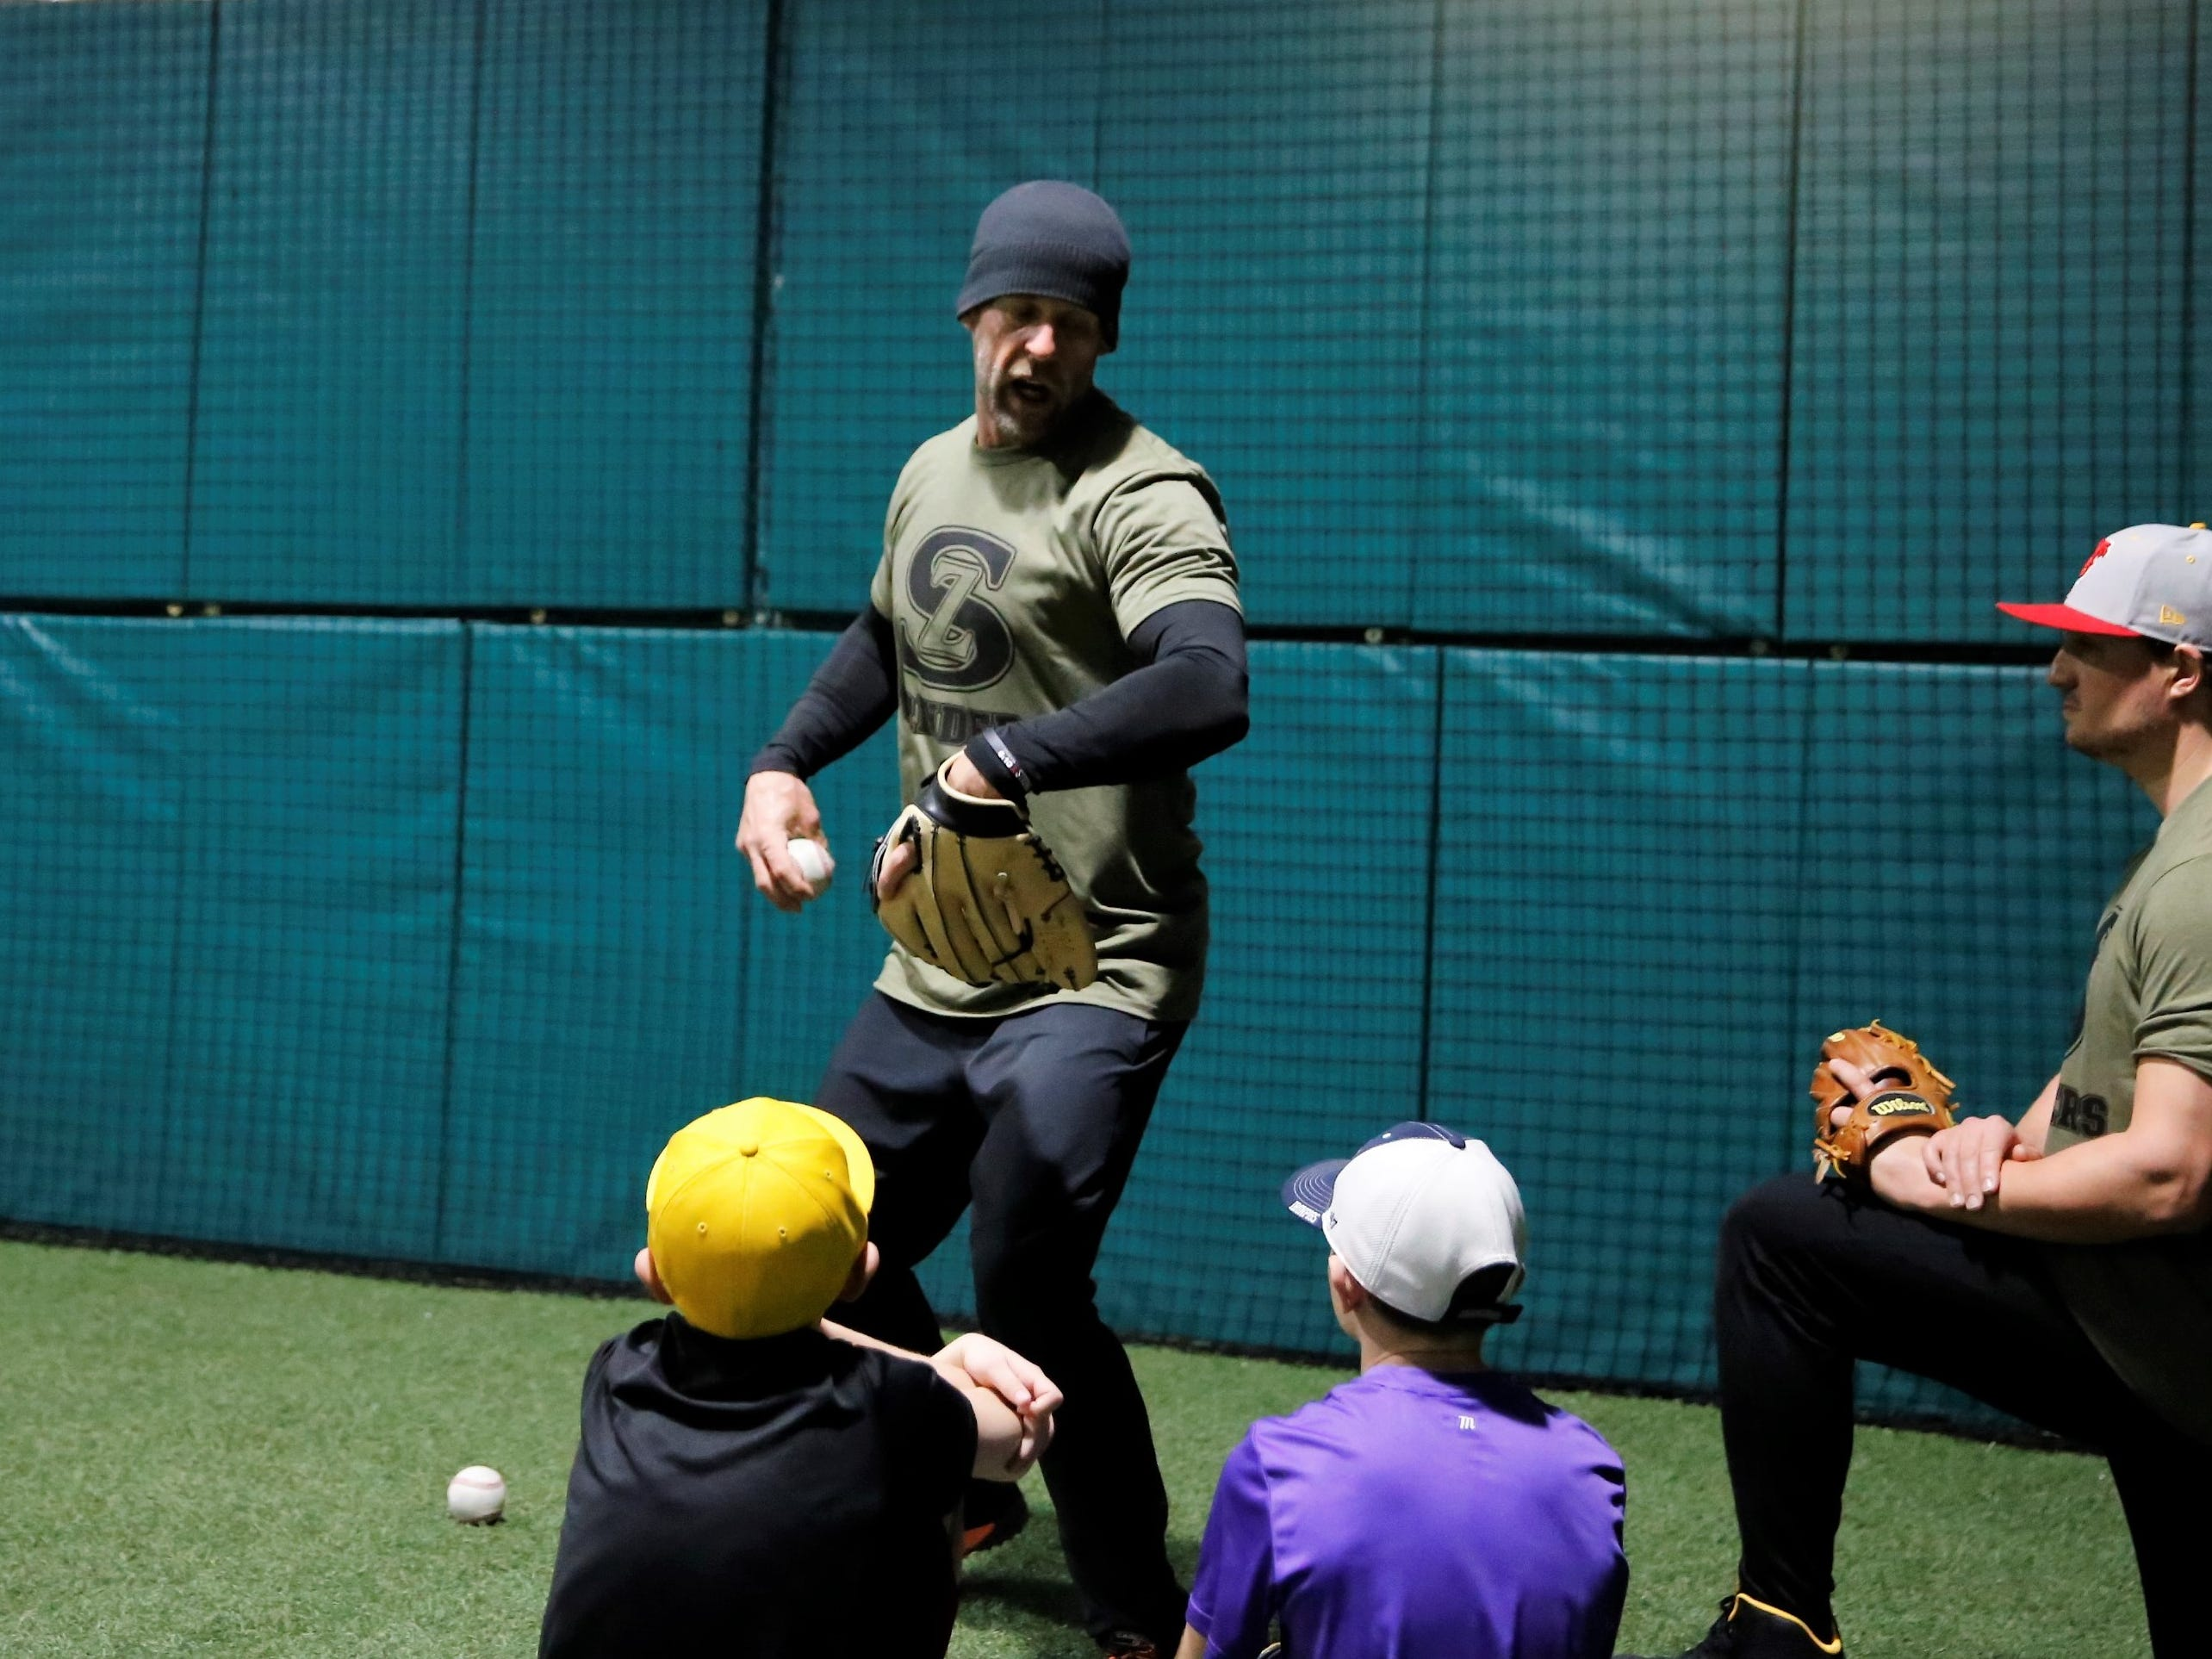 Grinders for Grace baseball camp instructor Adam Morrissey teaches footwork and form during fielding drills Saturday at the Strike Zone training facility in Farmington. The camp raised more than $75,000 to help pay medical bills for Morrissey's daughter, Grace Morrissey.